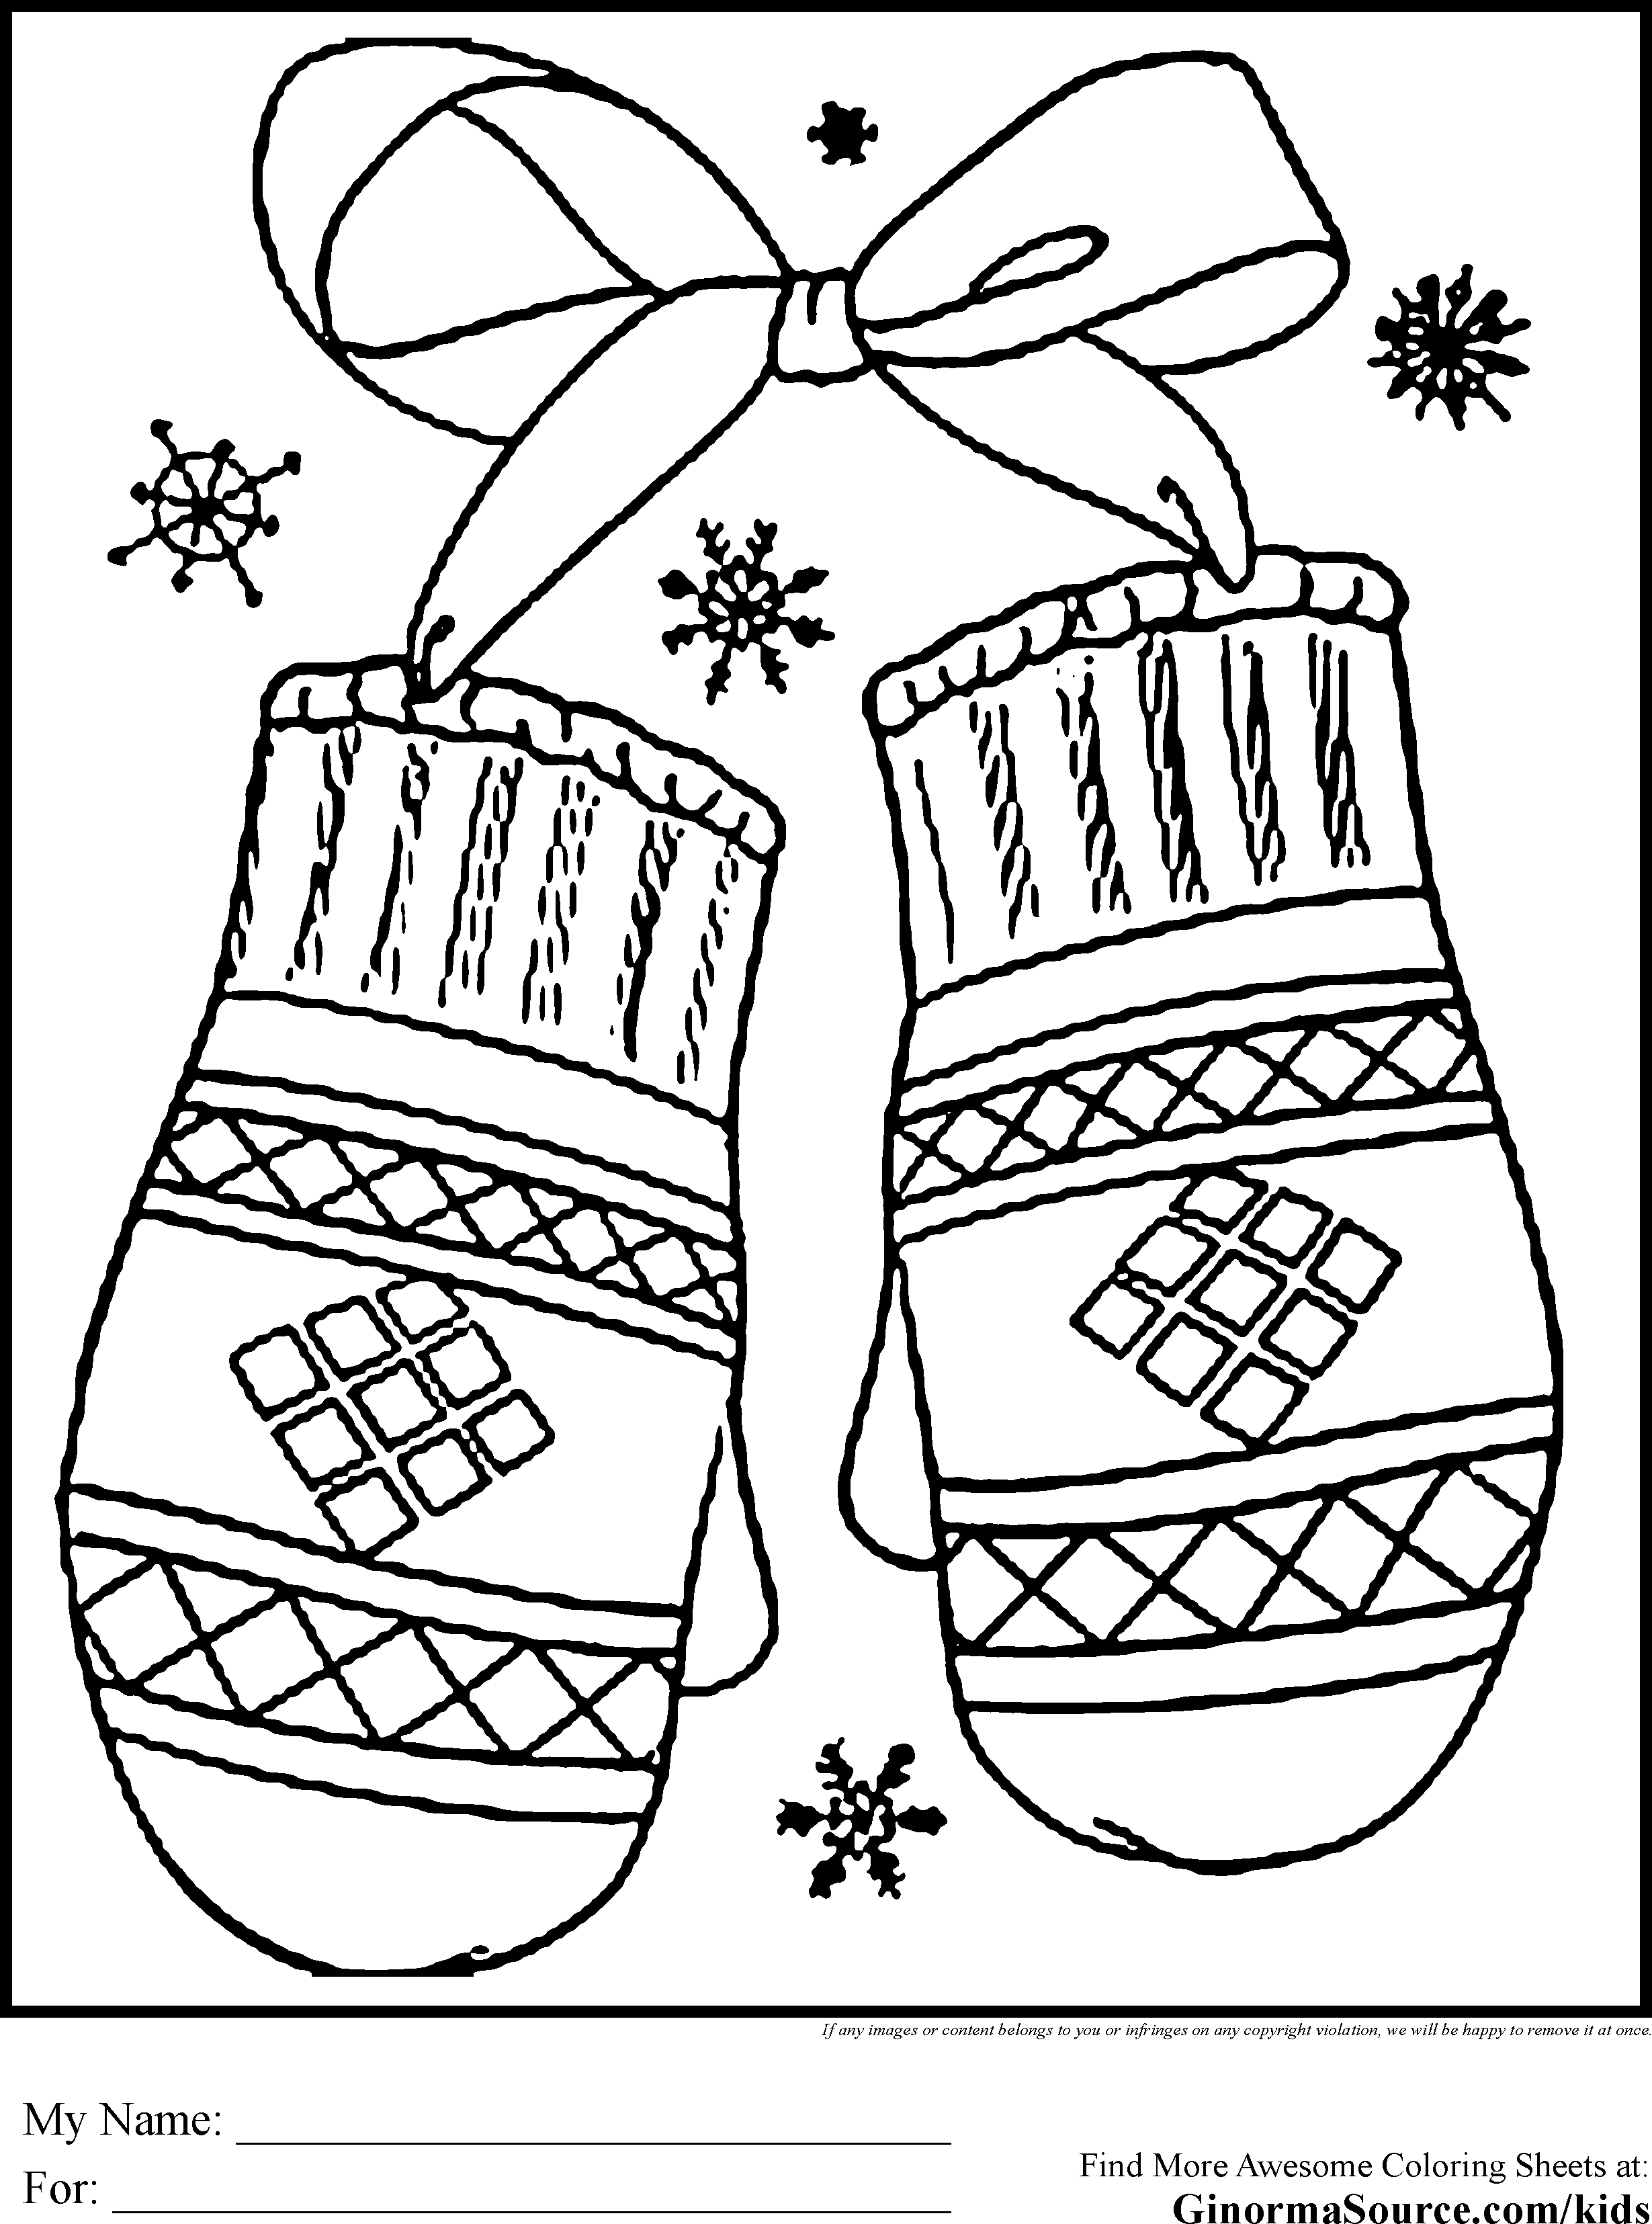 21 Winter Coloring Pages for Preschool Images | FREE COLORING PAGES